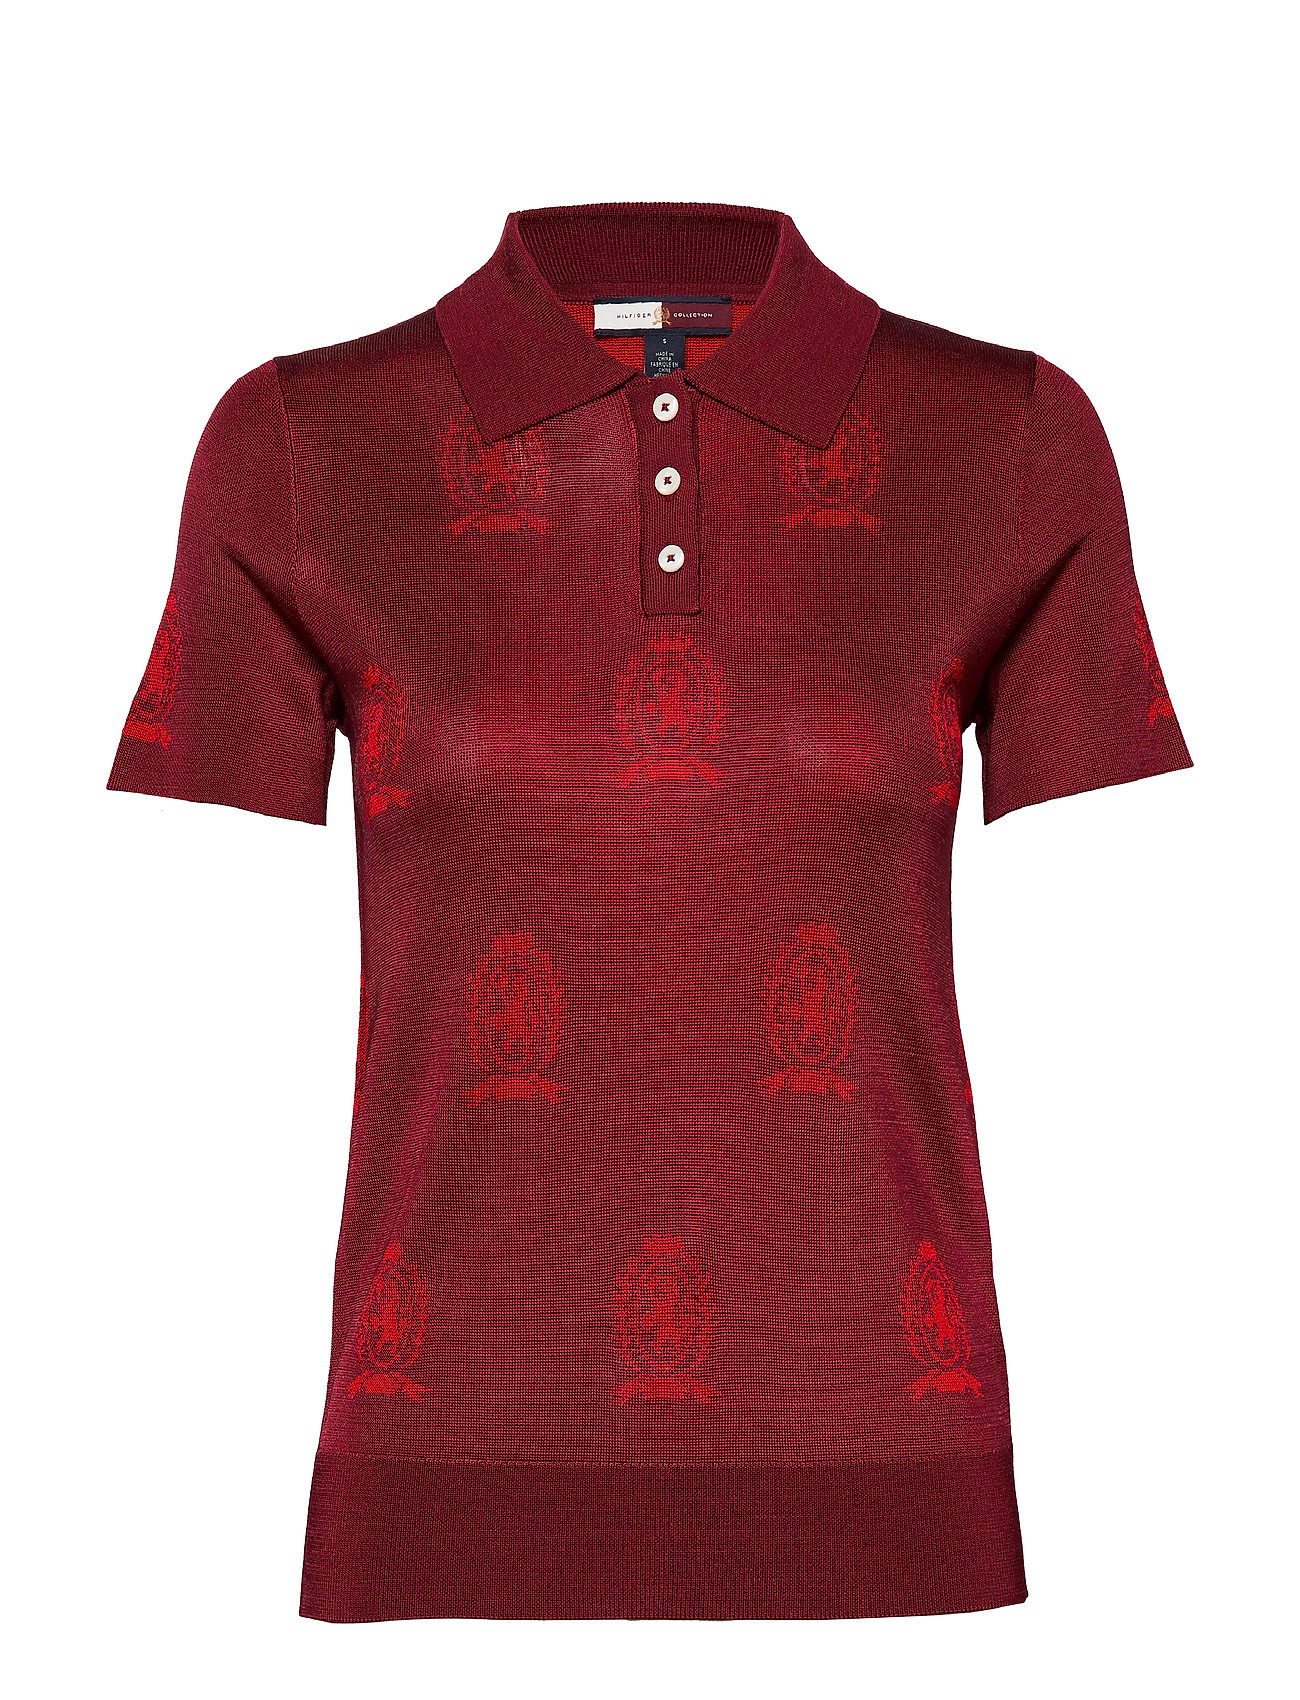 Hilfiger Collection HCW MONOGRAM POLO SH - TRUE RED